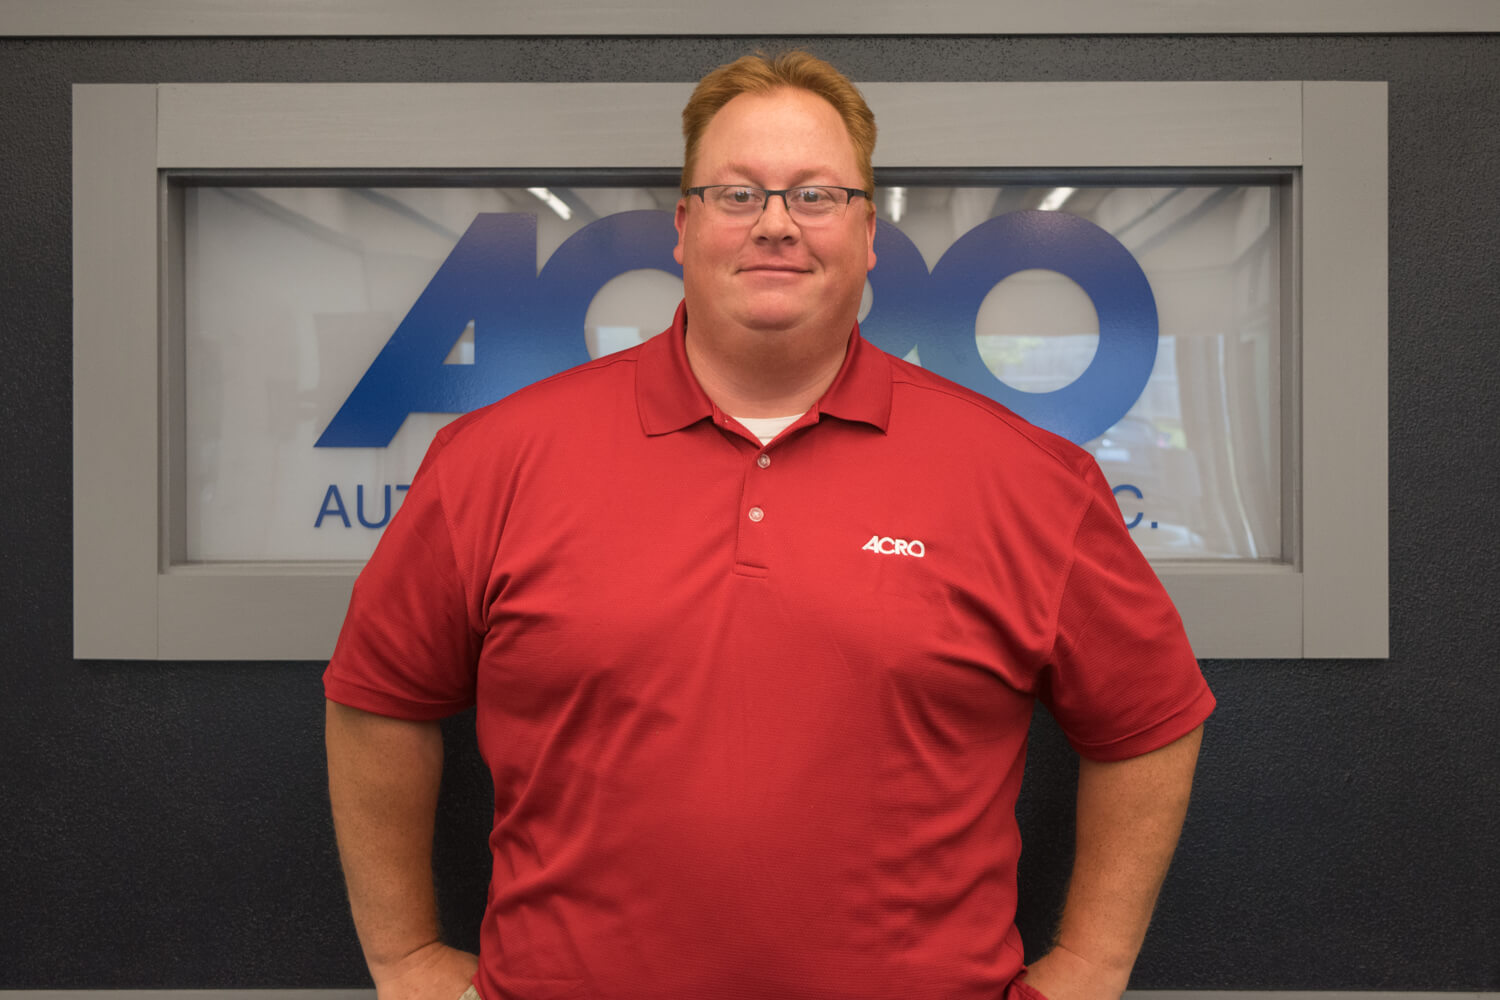 Director of the Automated Solutions Group (ASG) - Kyle D. Klamar